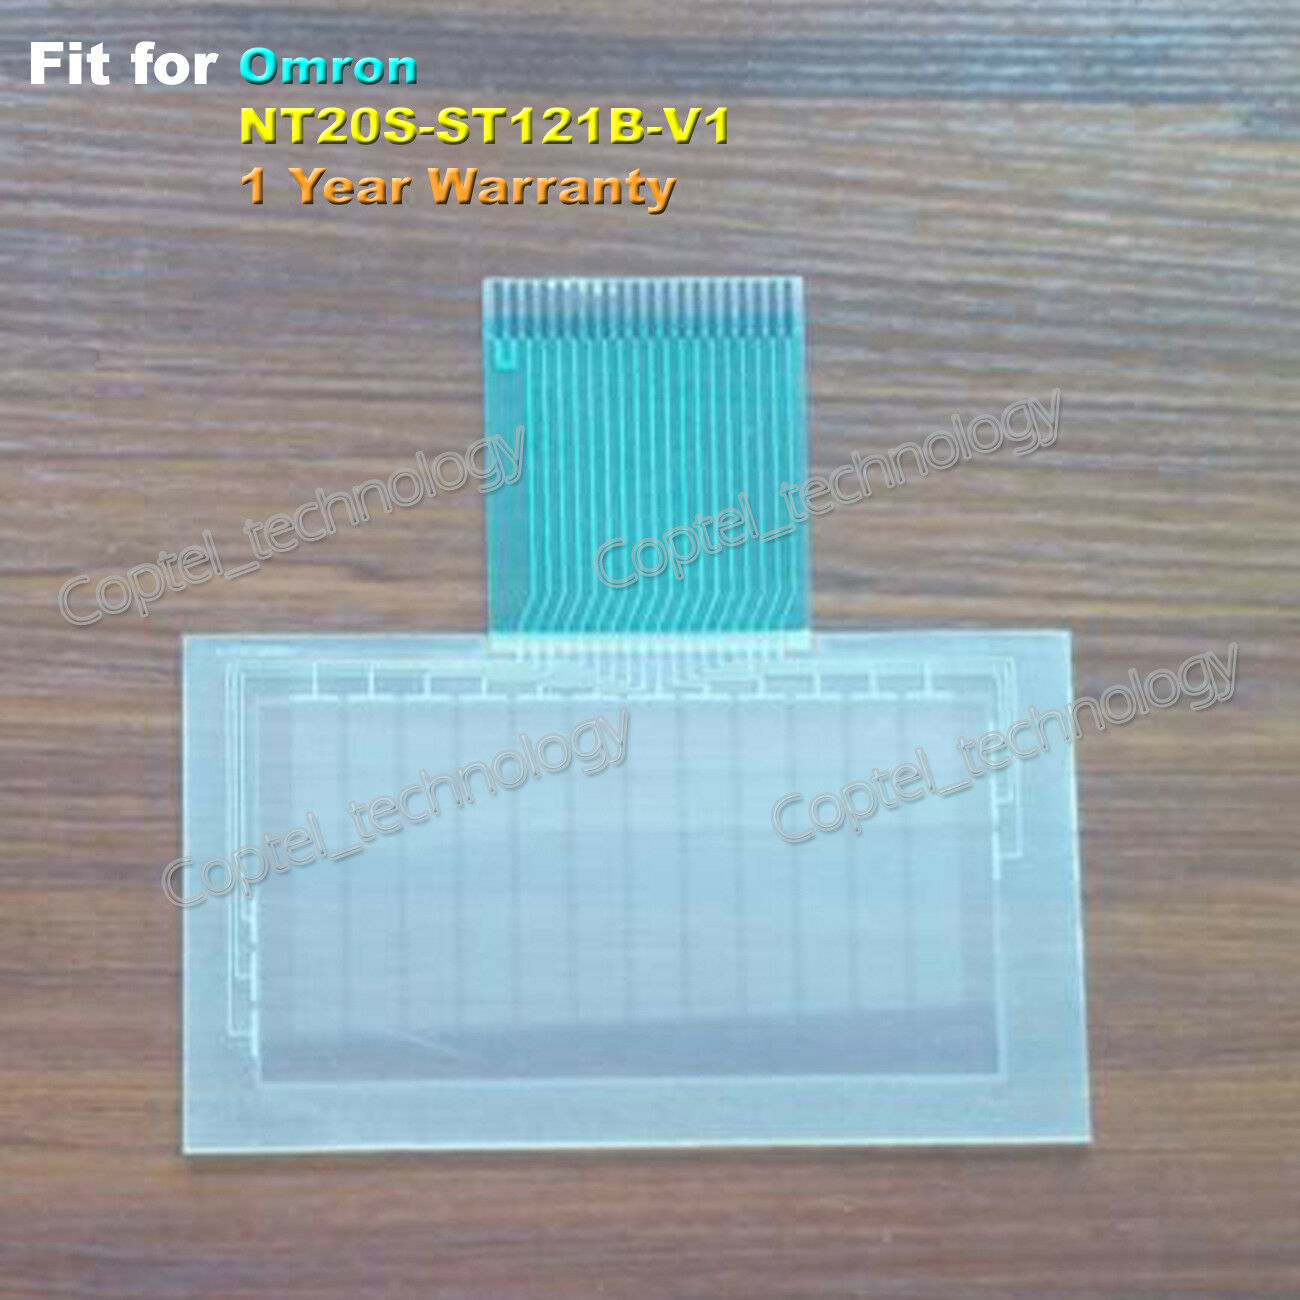 For Omron NT20S-ST121B-V1 NT20SST121BV1 Touch Screen Glass 1 Year Warranty